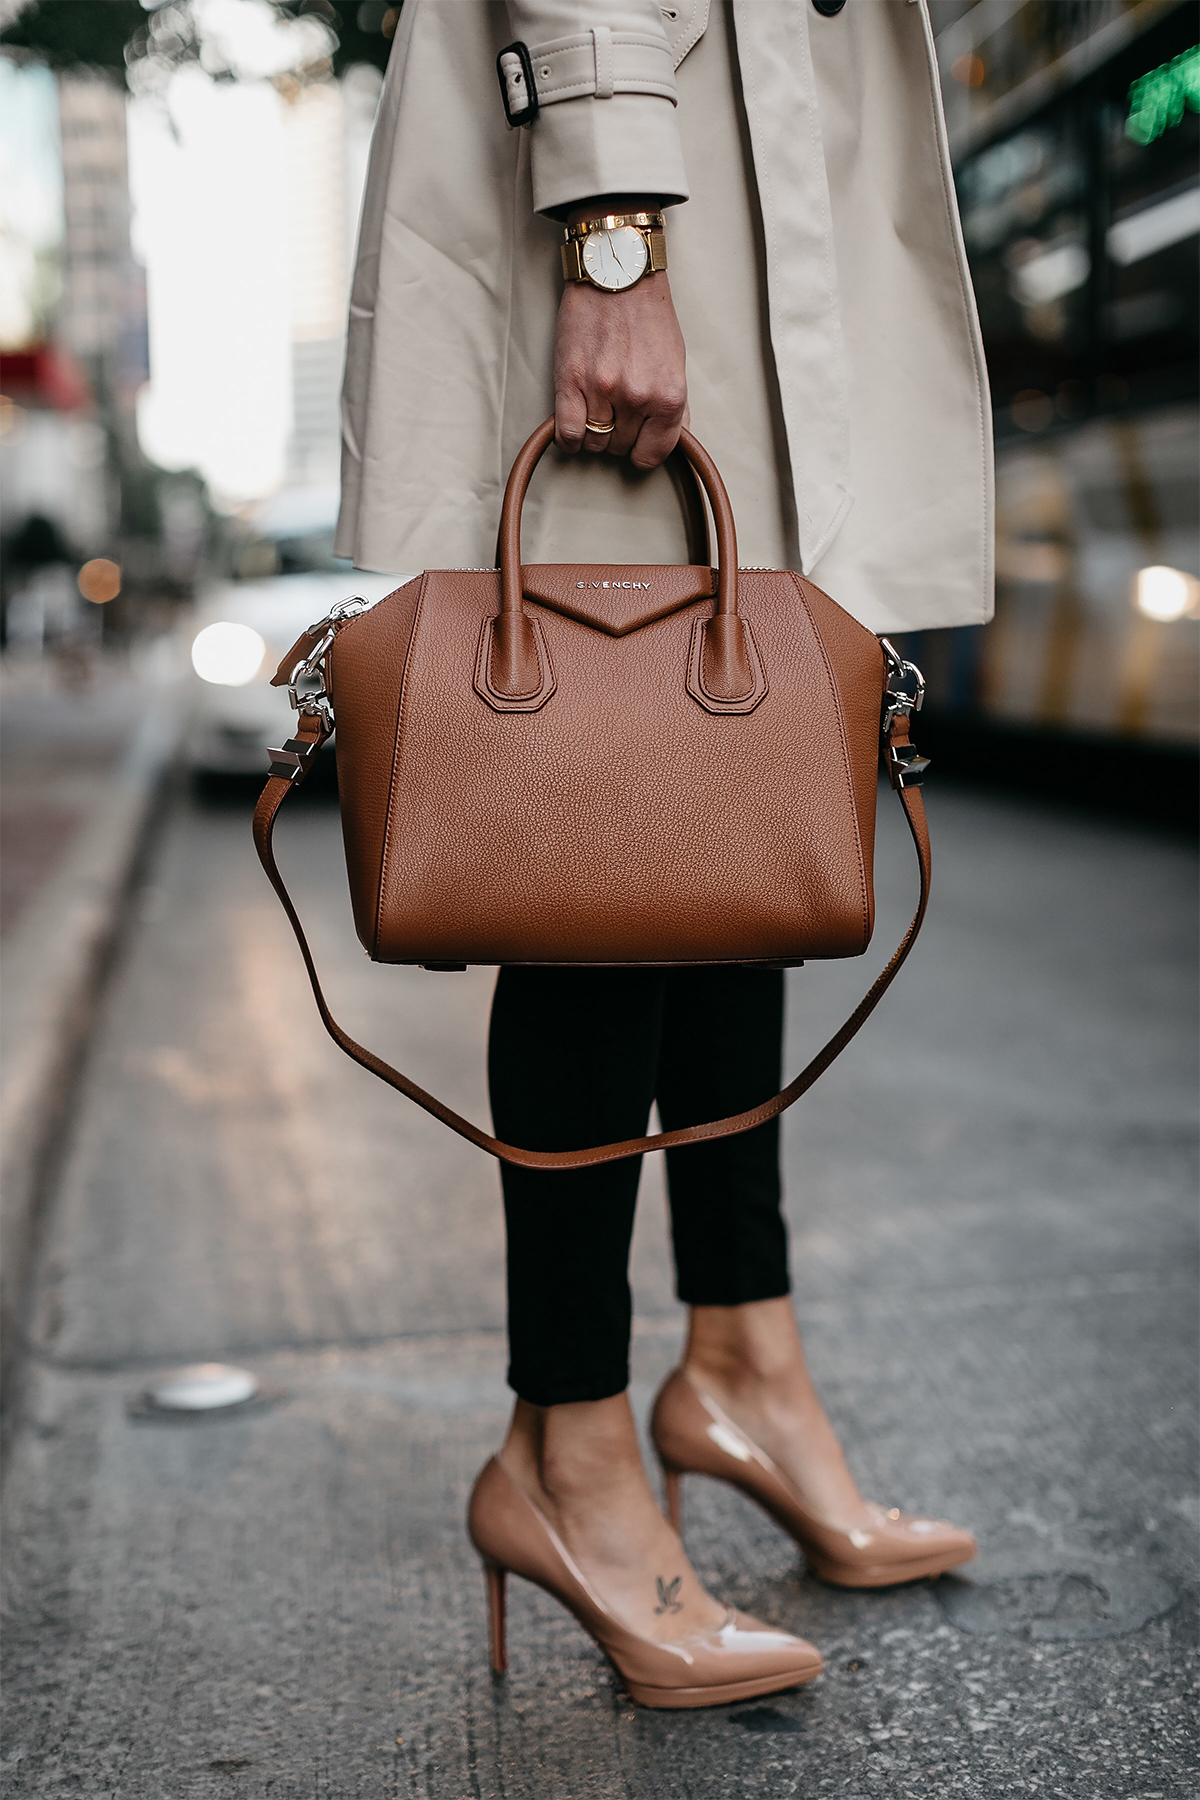 Givenchy Antigona Cognac Satchel Christian Louboutin Nude Pumps Trench Coat Black Skinny Jeans Fashion Jackson Dallas Blogger Fashion Blogger Street Style